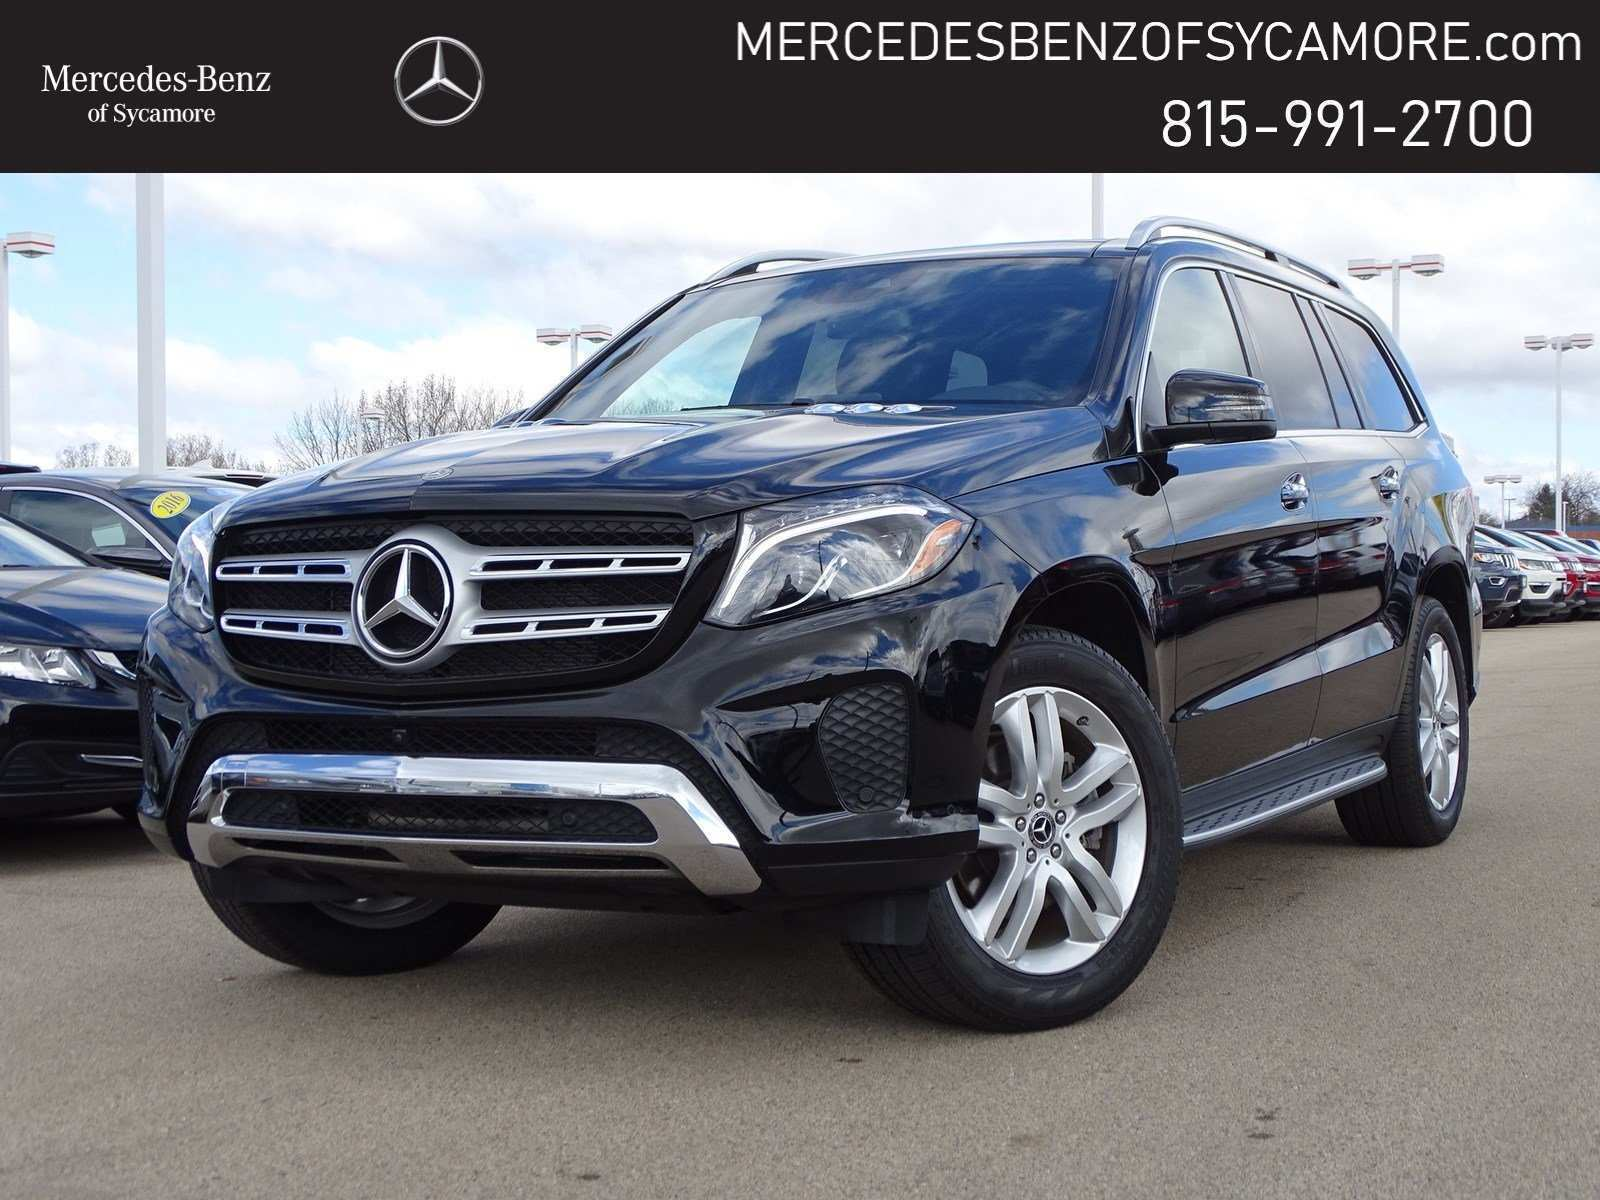 63 The Best 2019 Mercedes GLS Price Design And Review